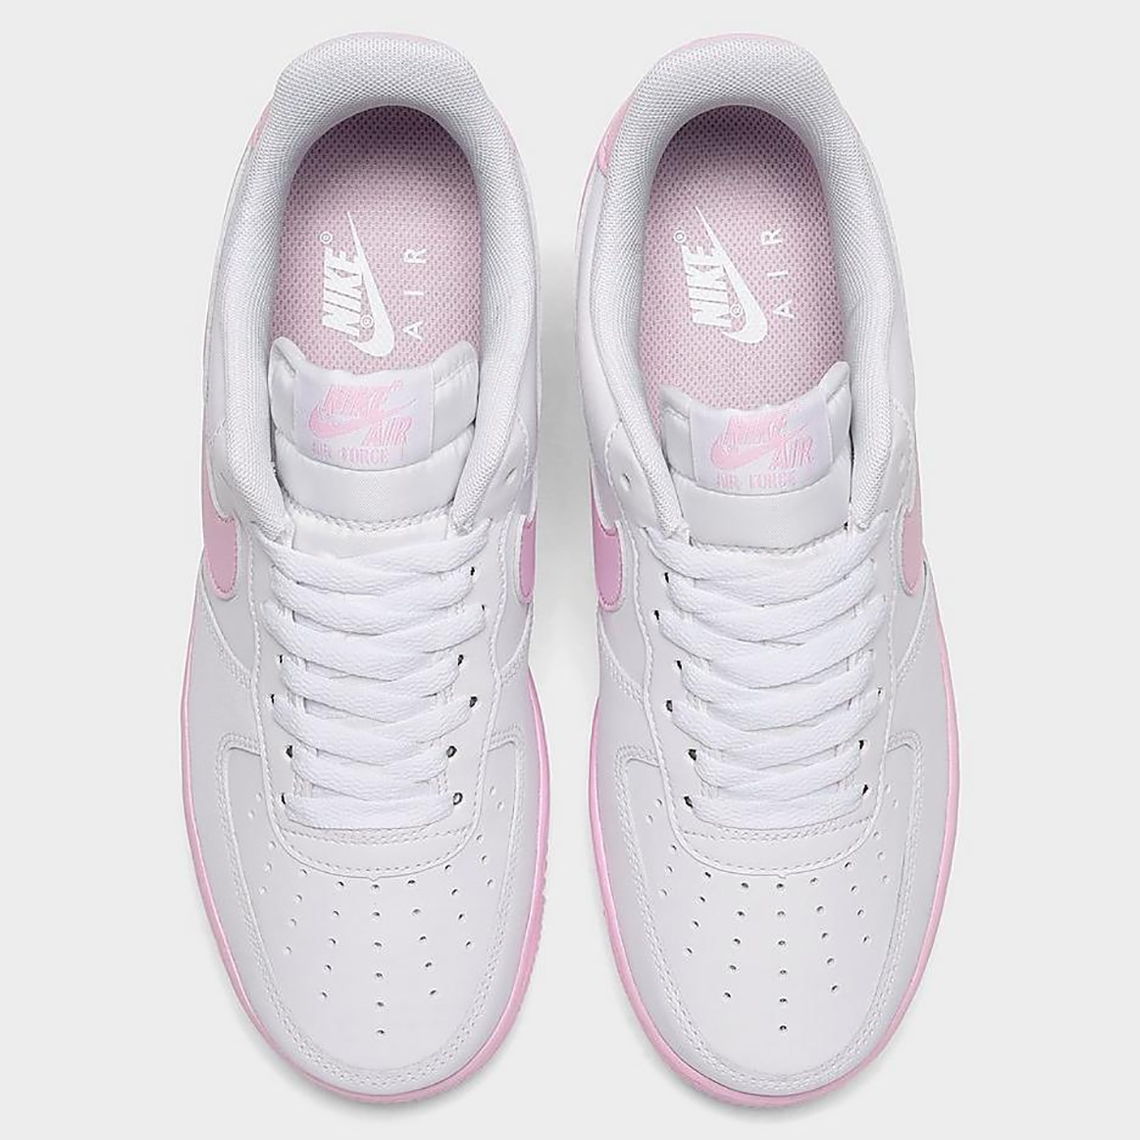 Nike Air Forece 1 Low White Pink Foam